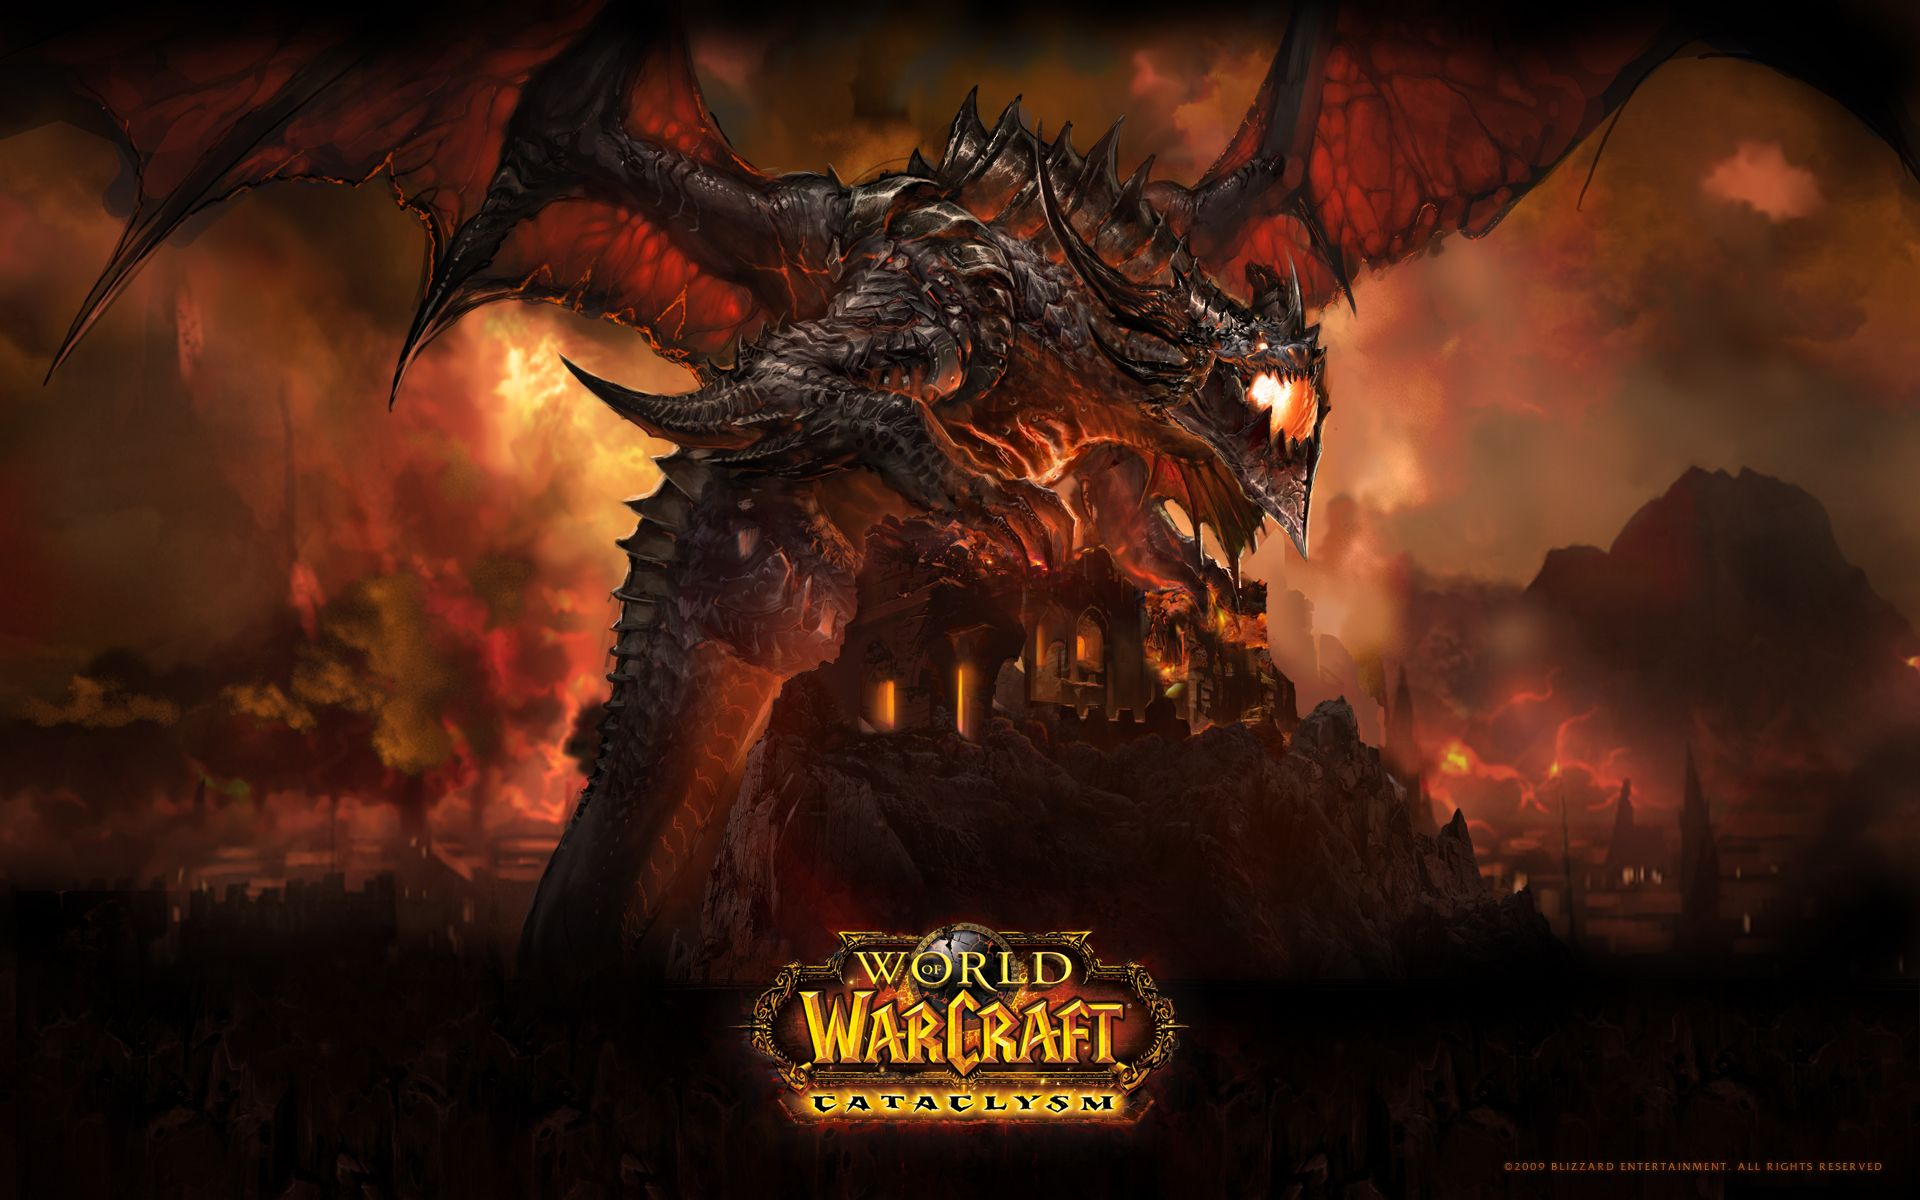 World of Warcraft Cataclysm 1080p Wallpaper World of Warcraft 1920x1200